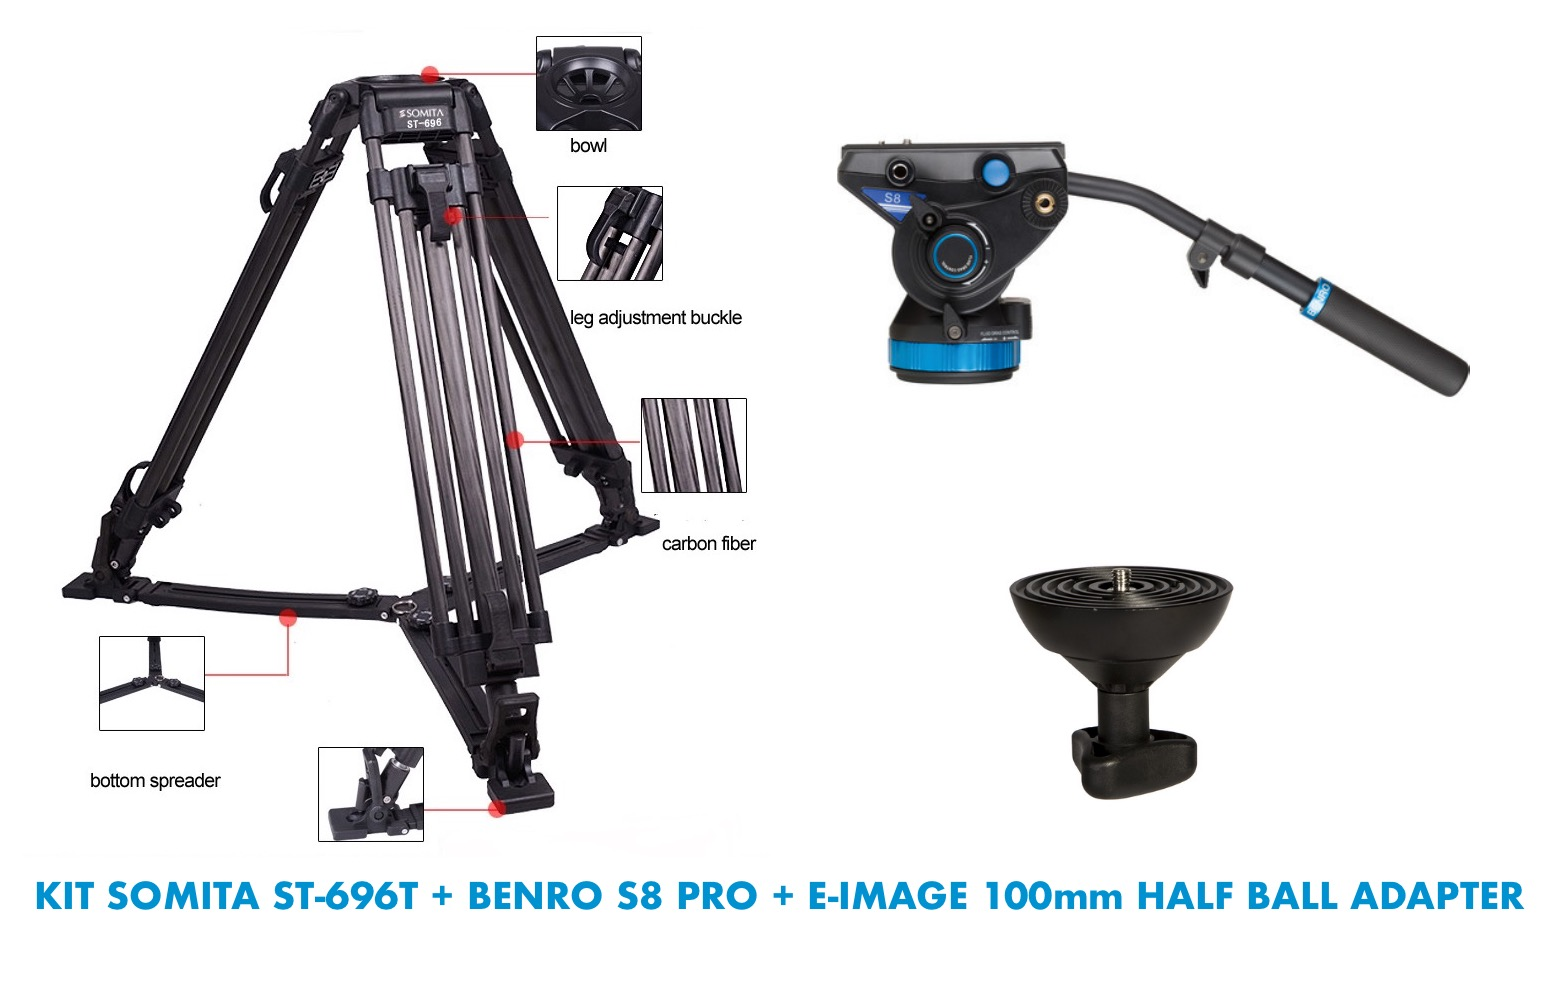 Picioare Trepied Video Preturi Rezultate Benro A1883fs2c Aero 2 Travel Angel Tripod Industries Ltd Kit Somita St 696t S8 Pro E Image 100mm Half Ball Adapter